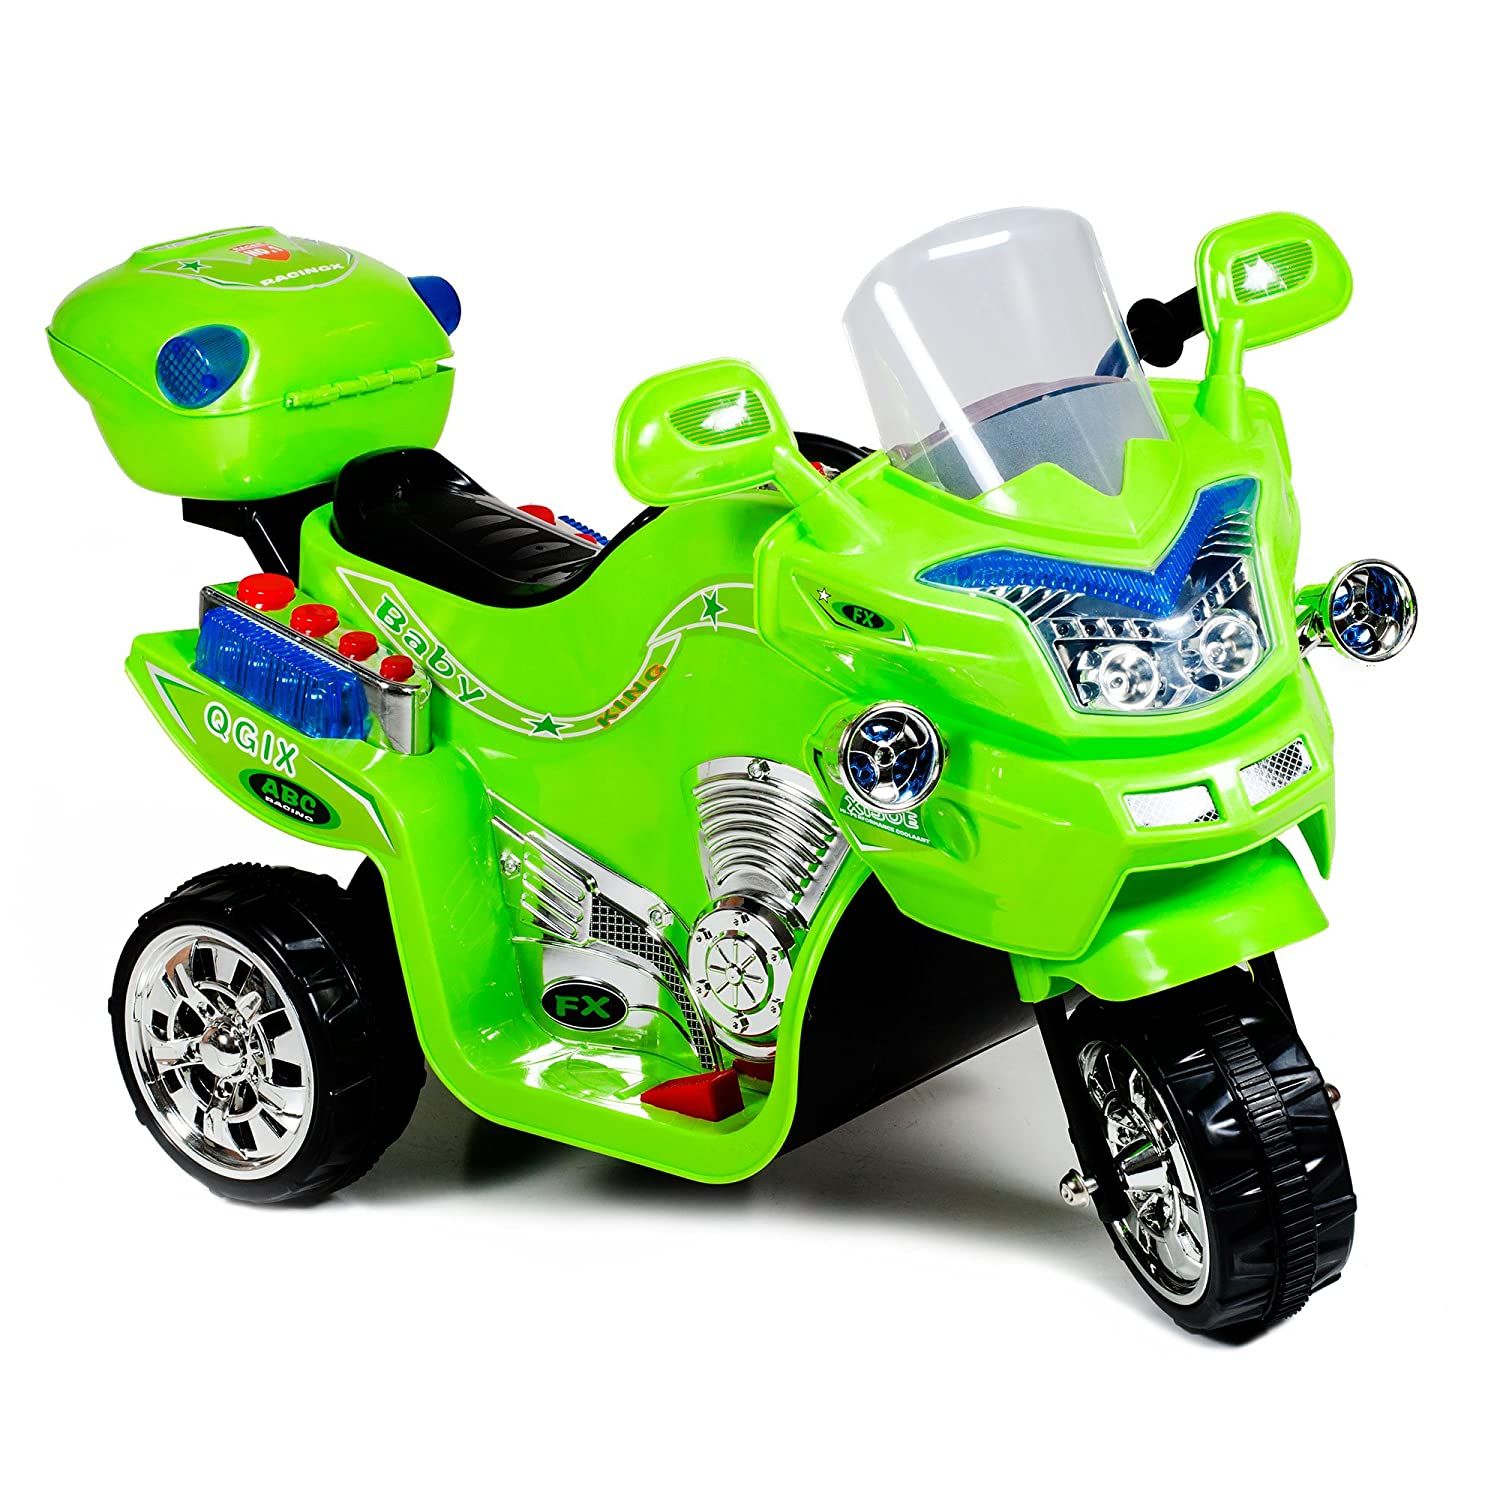 Amazon Ride on Toy 3 Wheel Motorcycle for Kids Battery